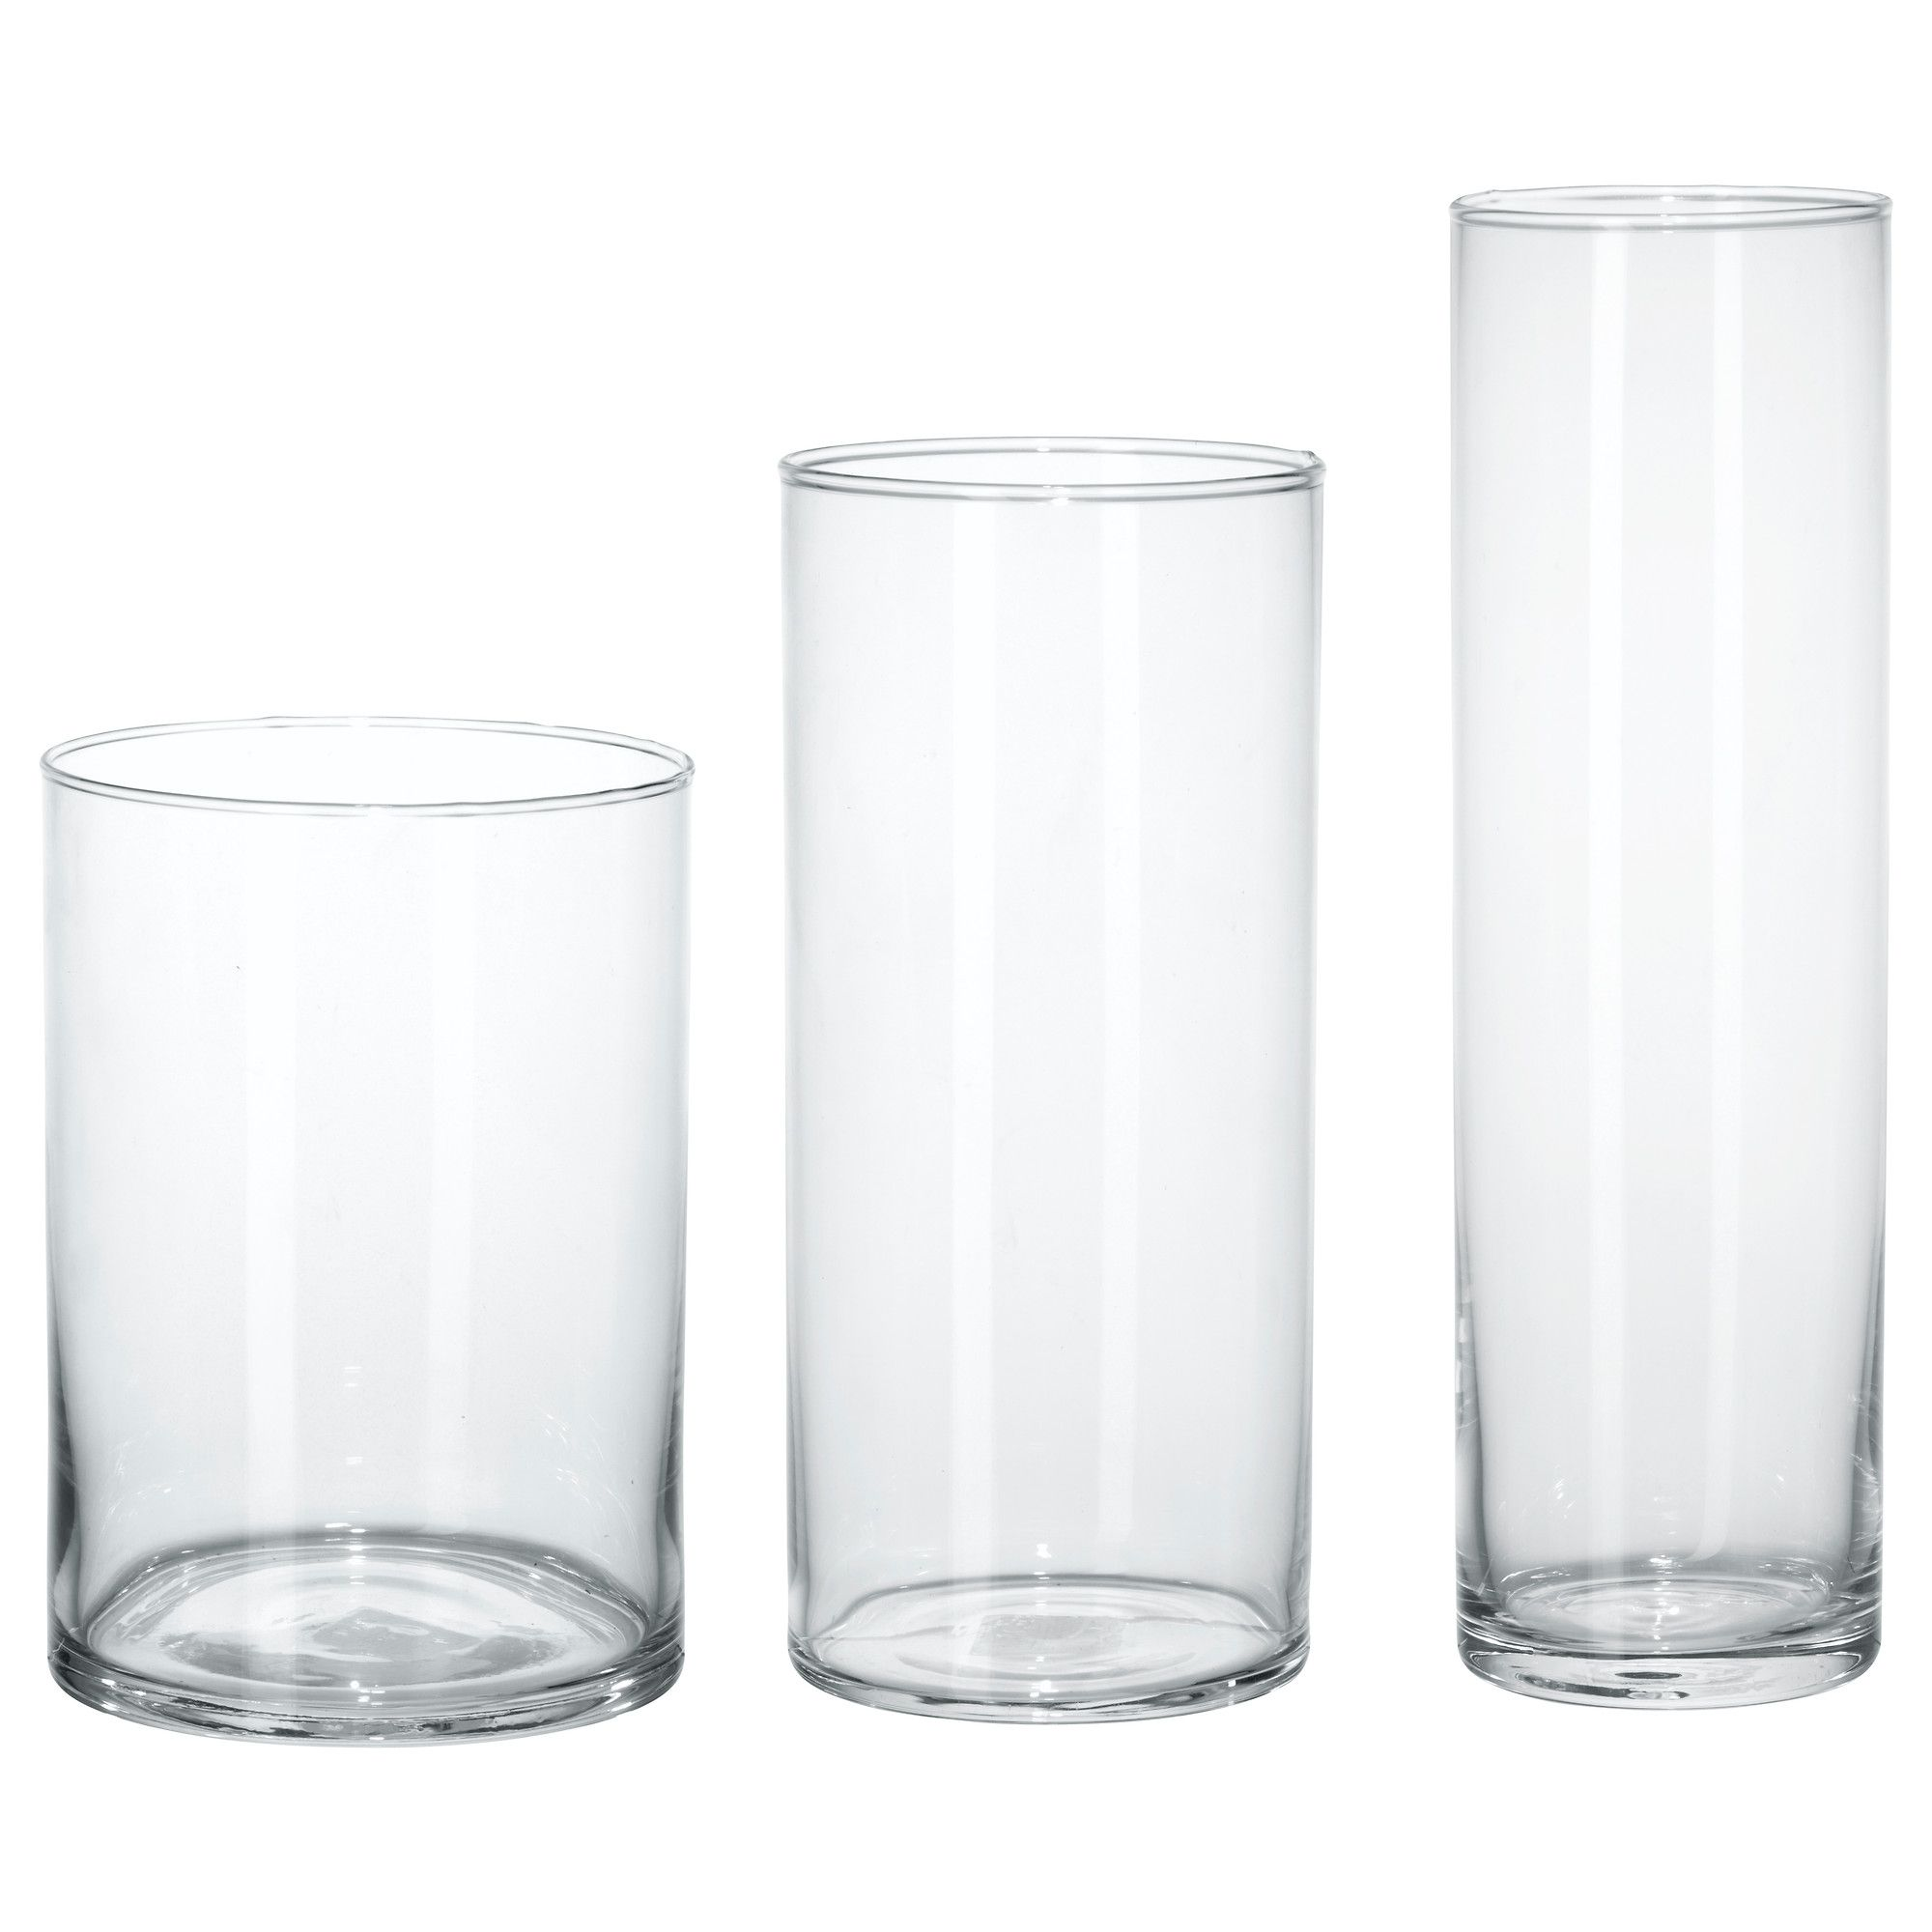 CYLINDER Vase, set of 3, clear glass | Pinterest | Wedding ...